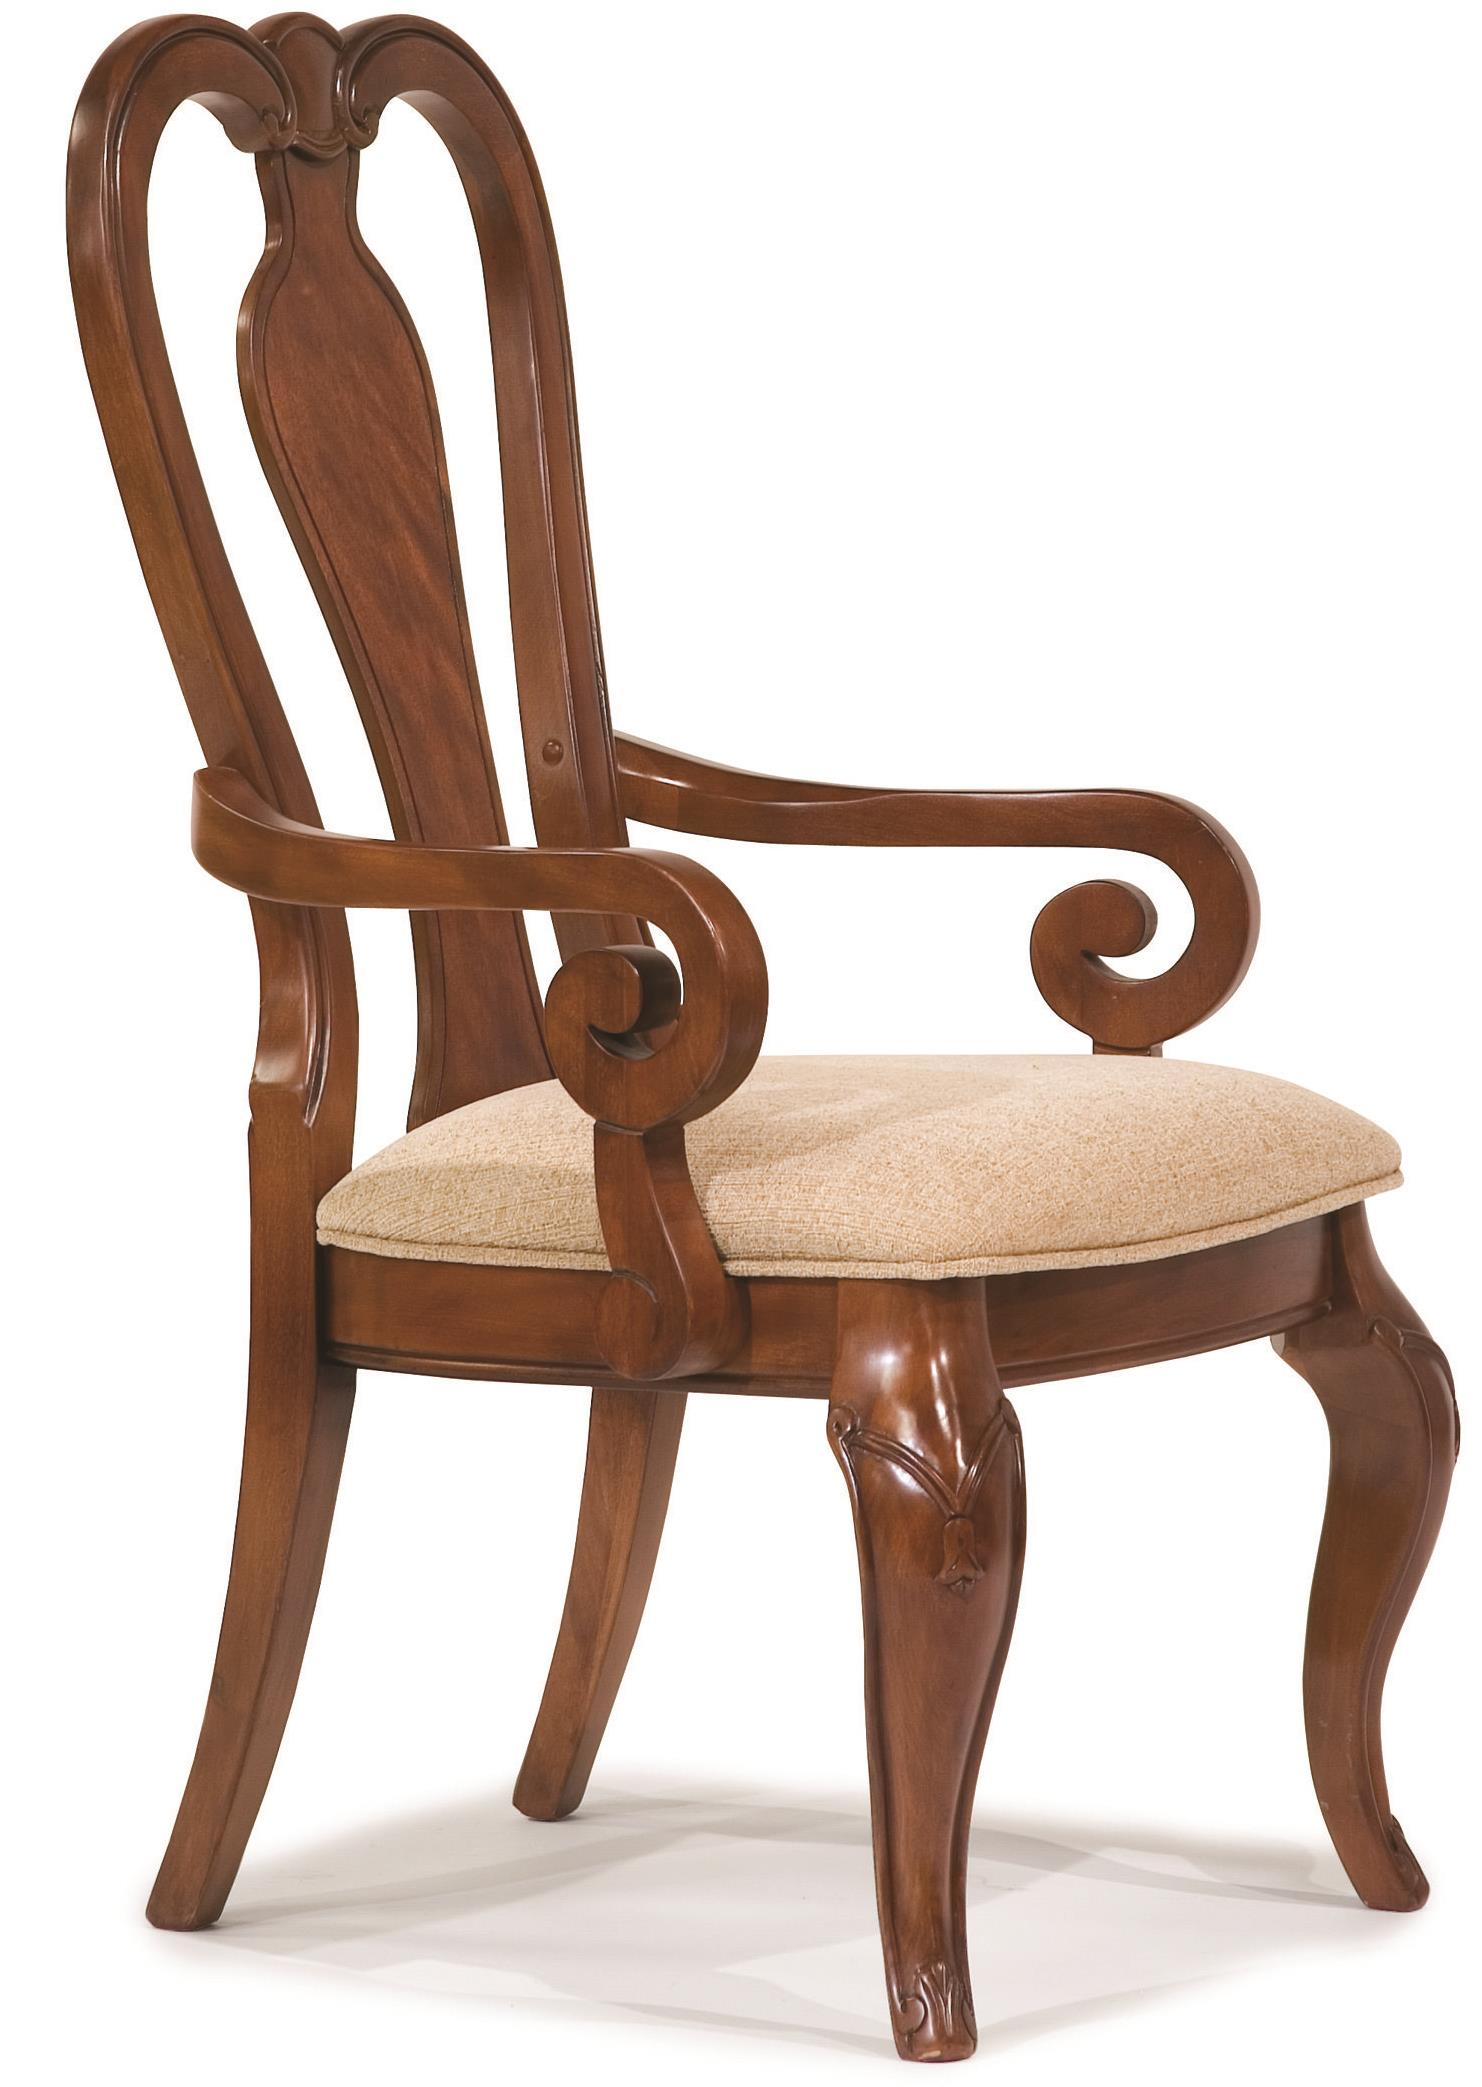 Queen Anne Arm Chair with Upholstered Seat by Legacy Classic